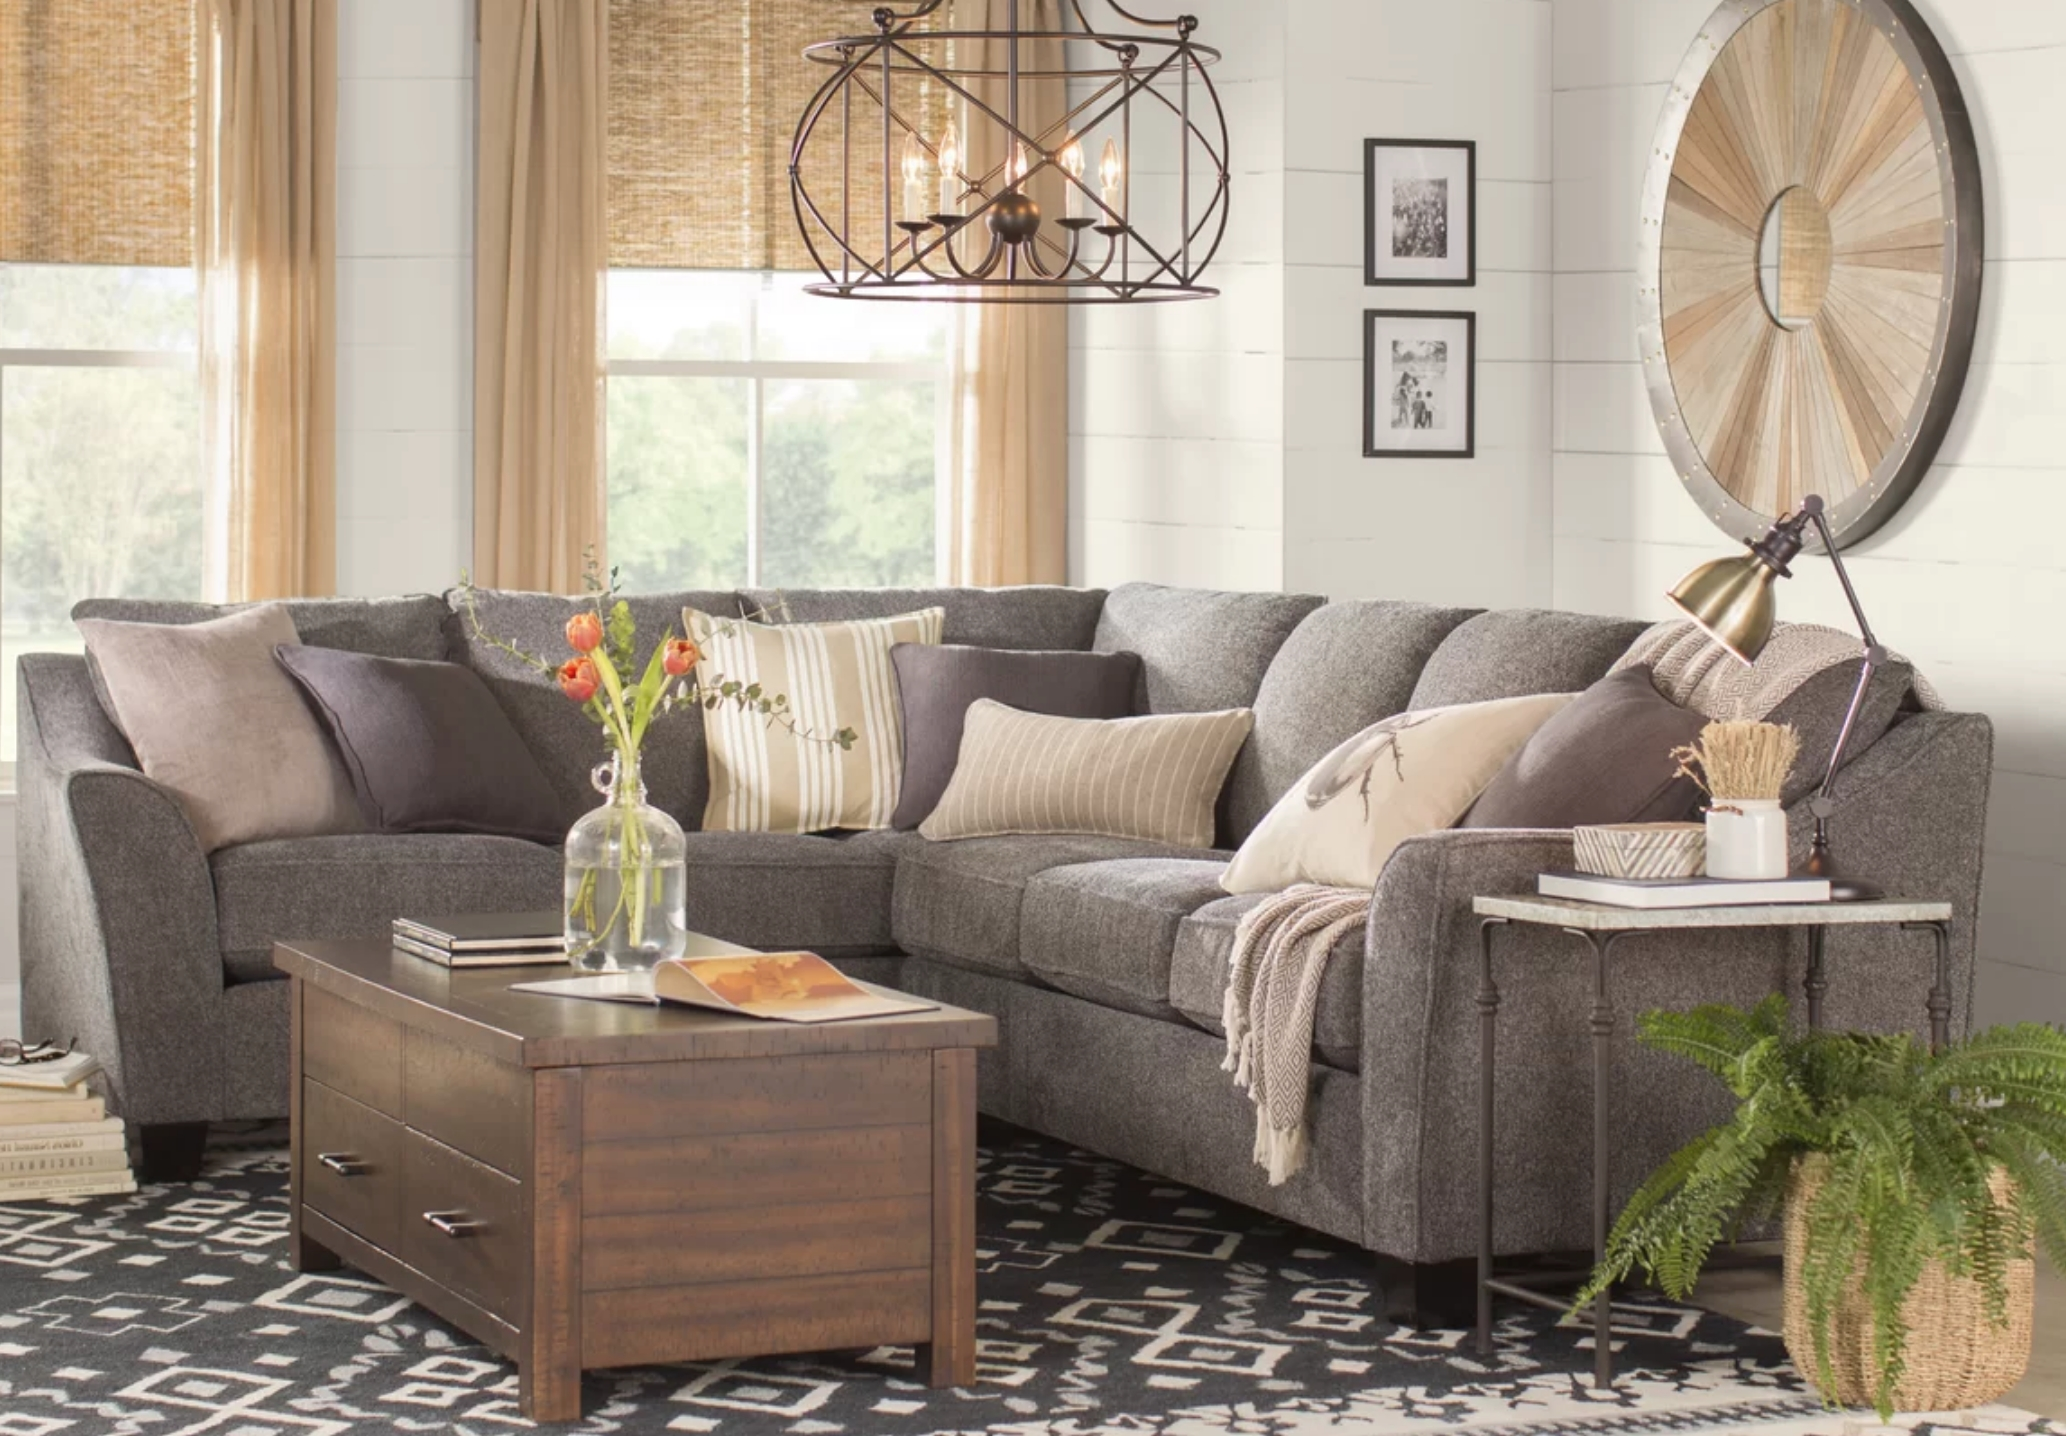 Wayfair Just Launched An Online Interior Design Service That 10+ 60 Minute Makeover Living Room Ideas